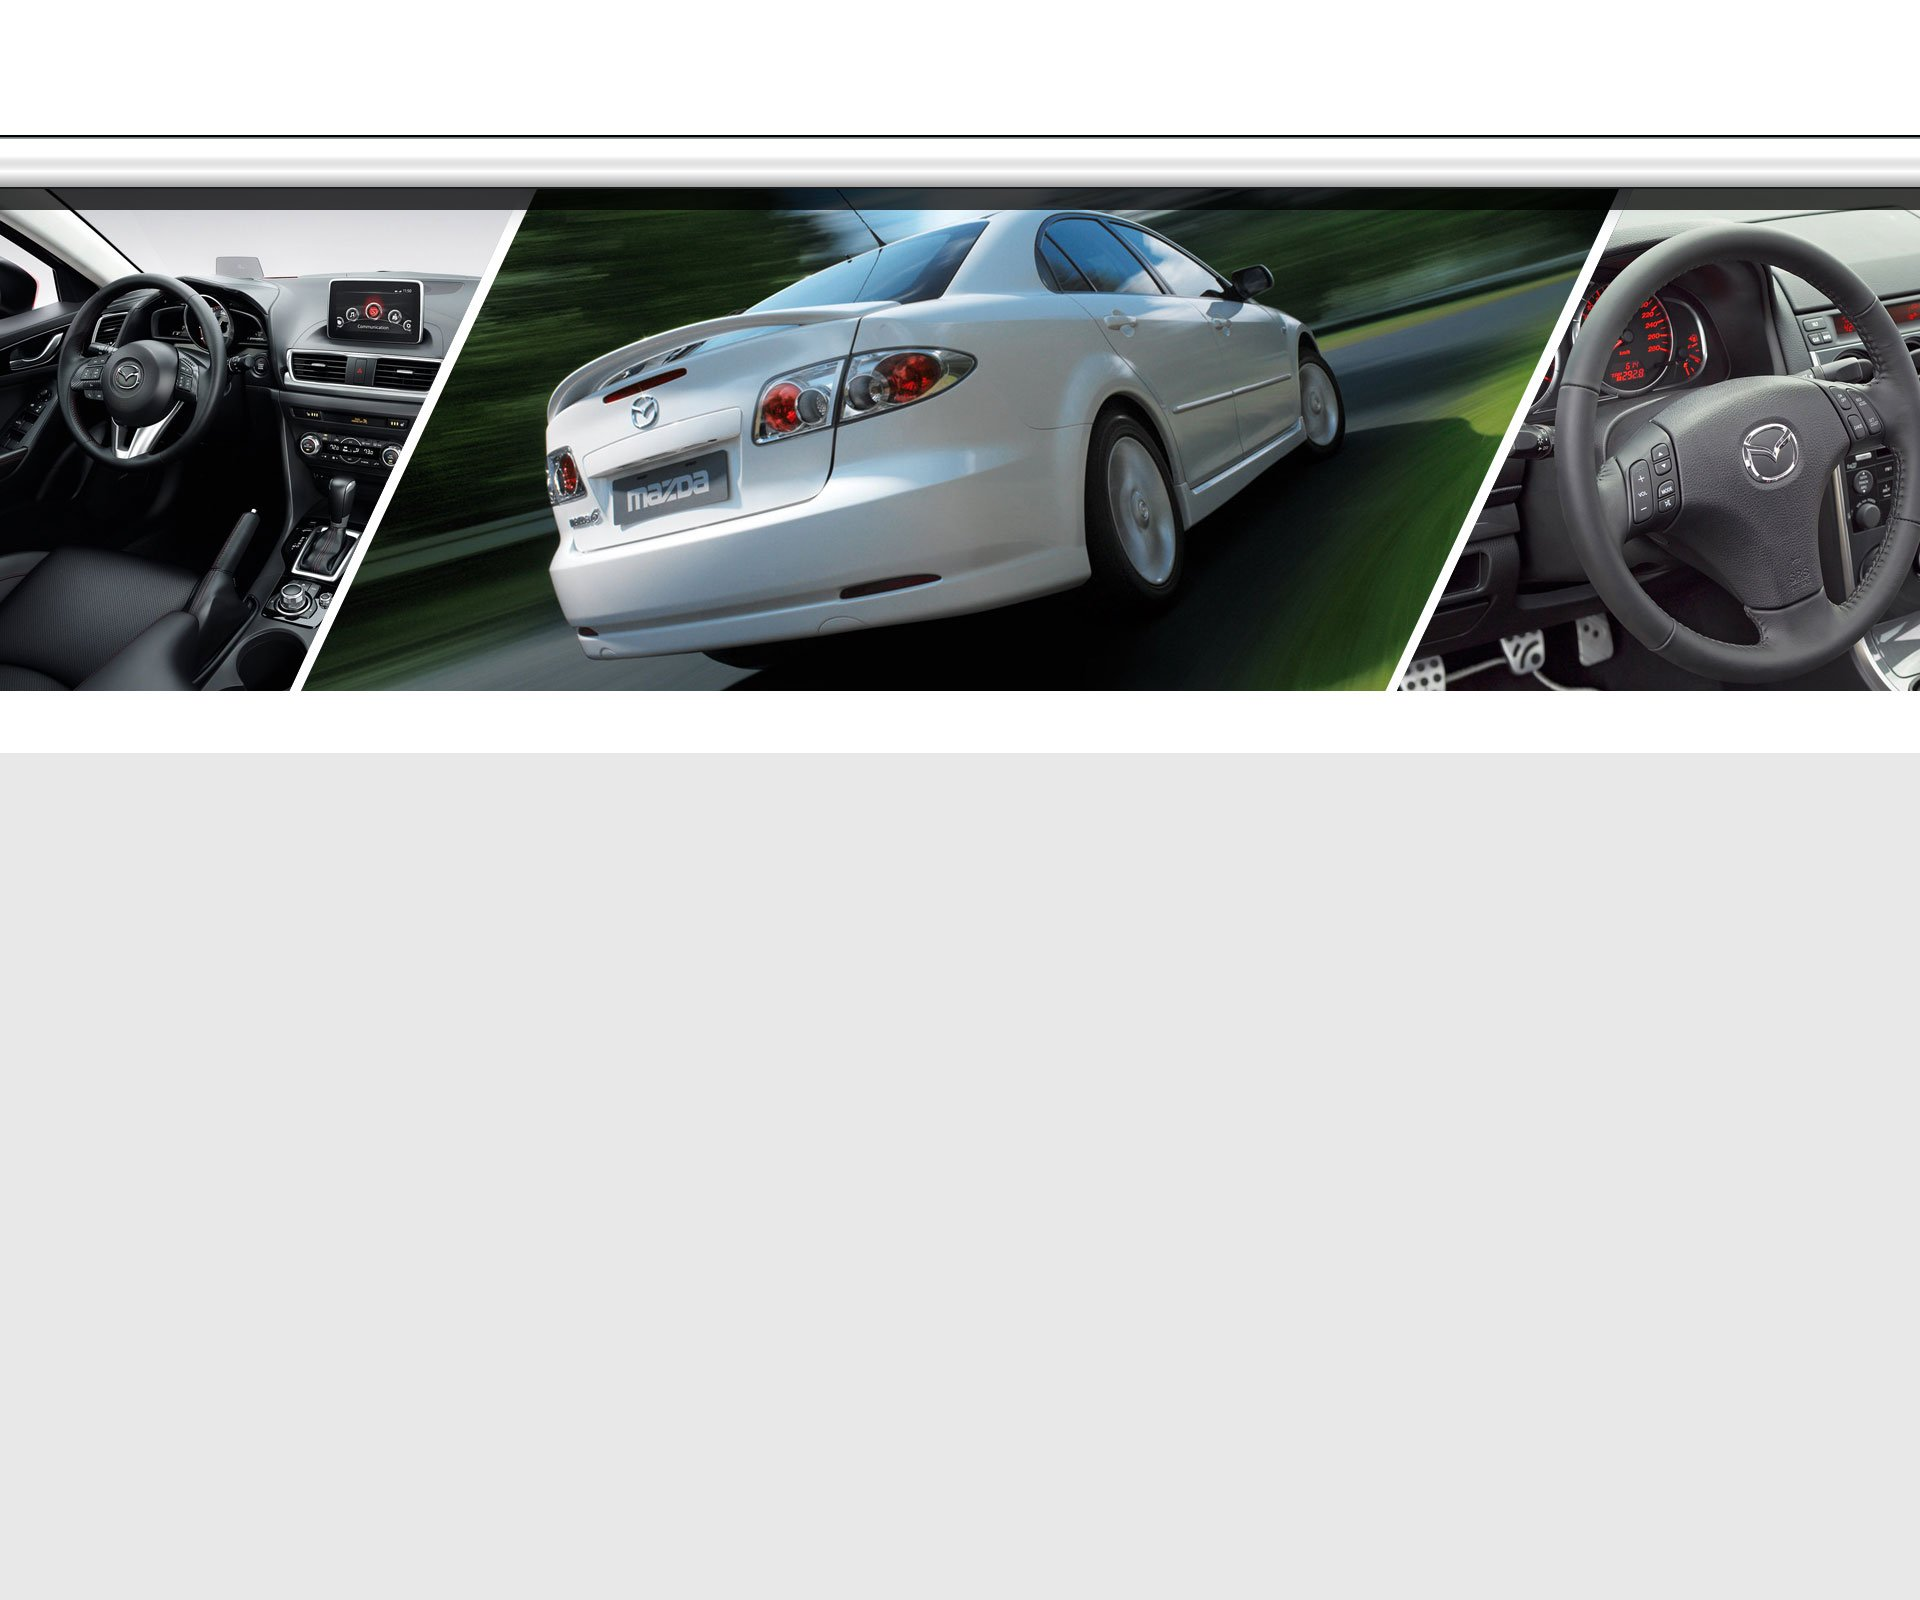 d cars trulia p ps uh rental st ne lincoln rent picture for